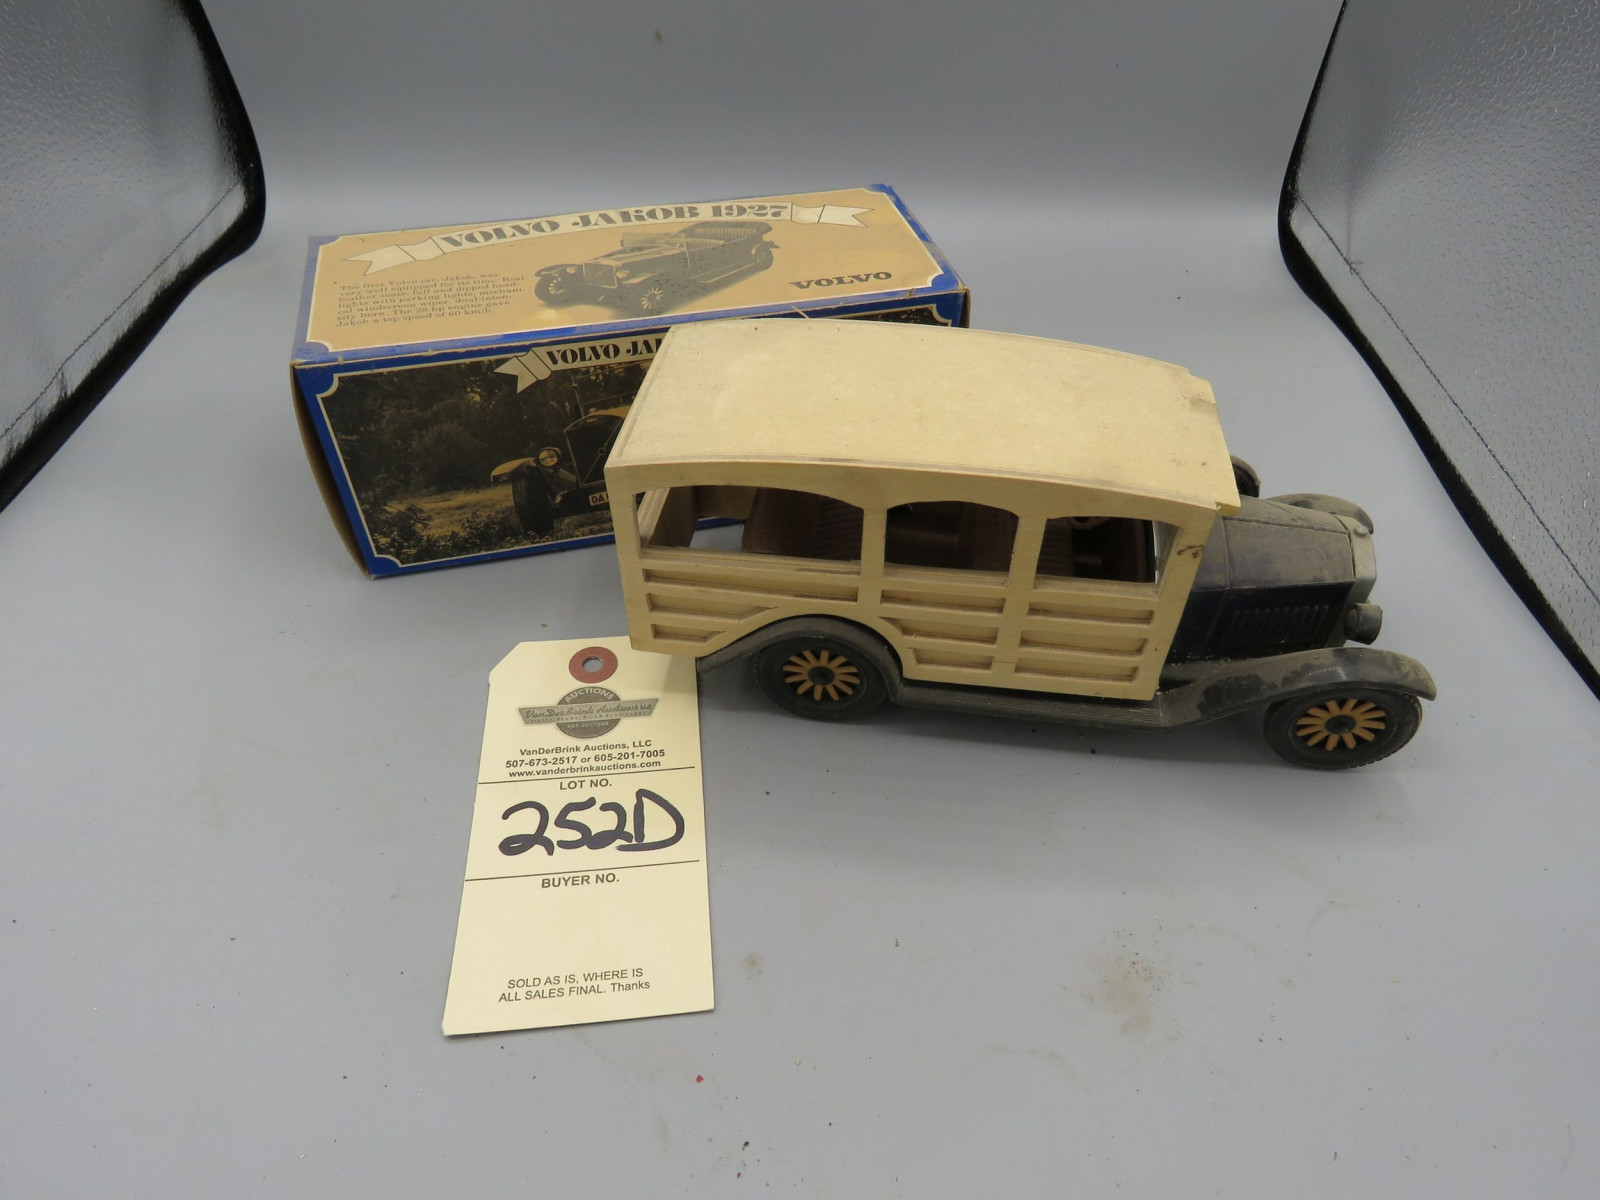 Promotional Volvo 1927 Model Plastic in the Box - Image 1